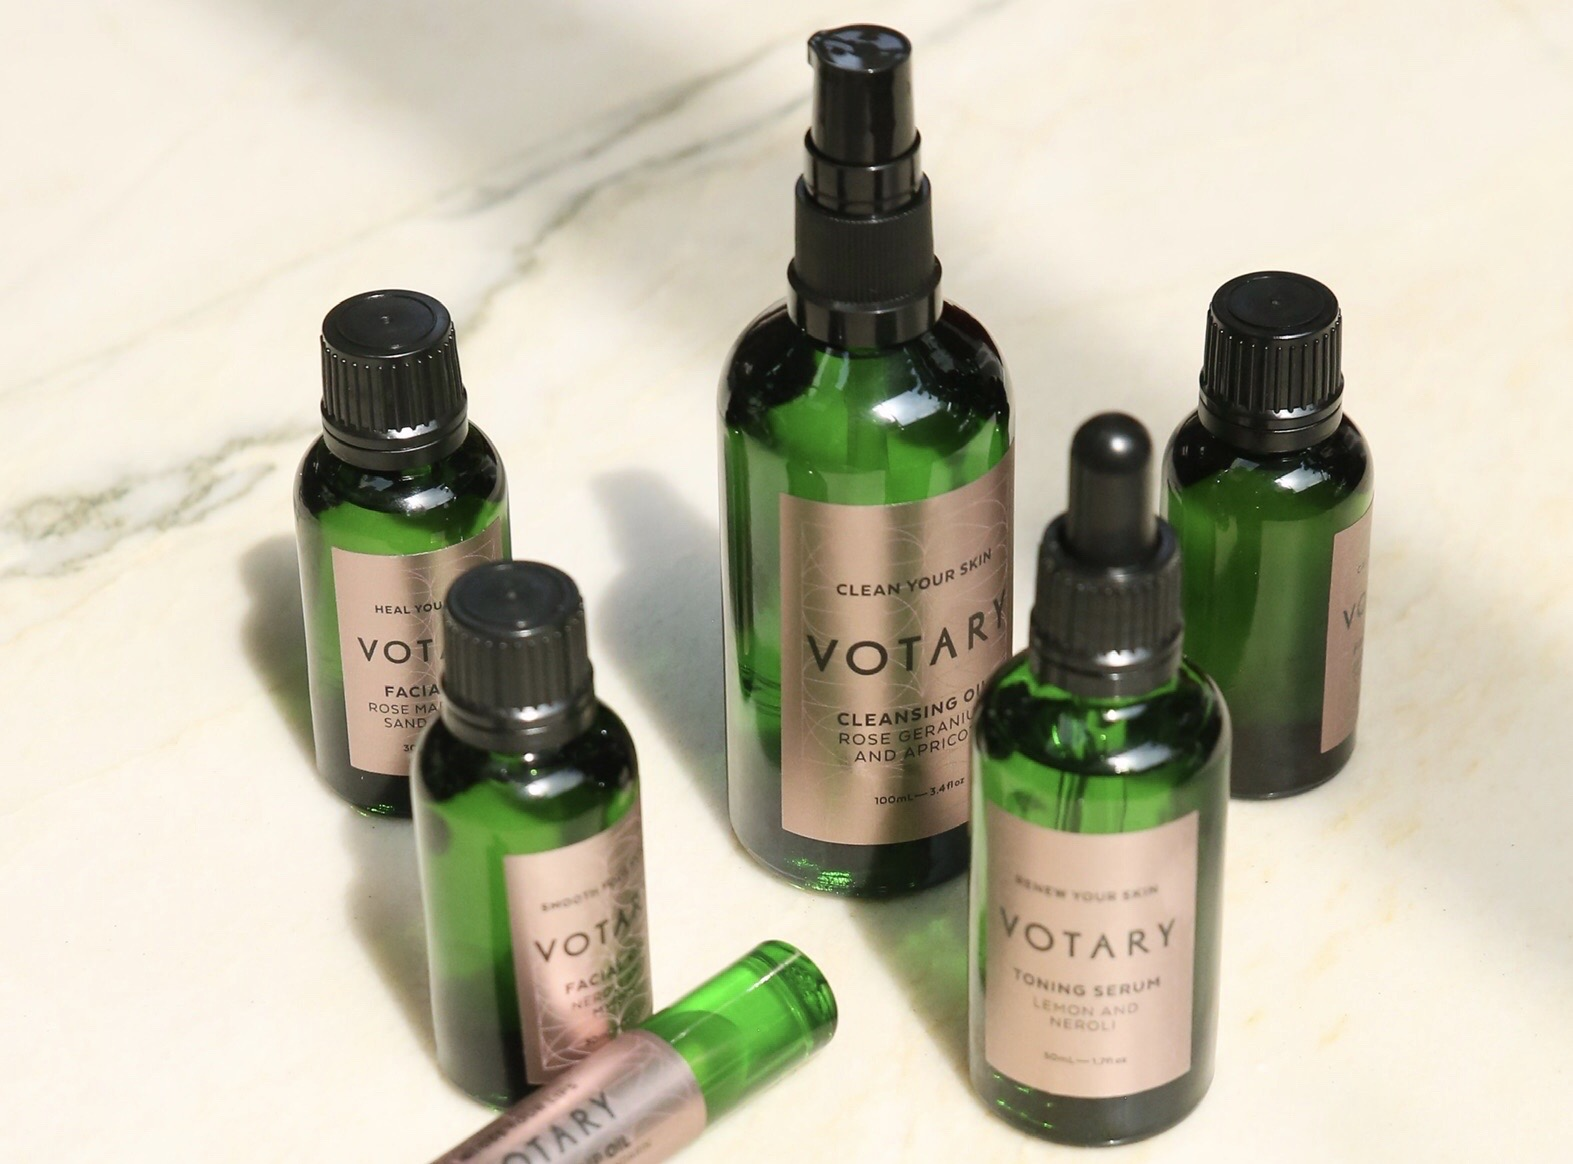 Take The Votary Quiz